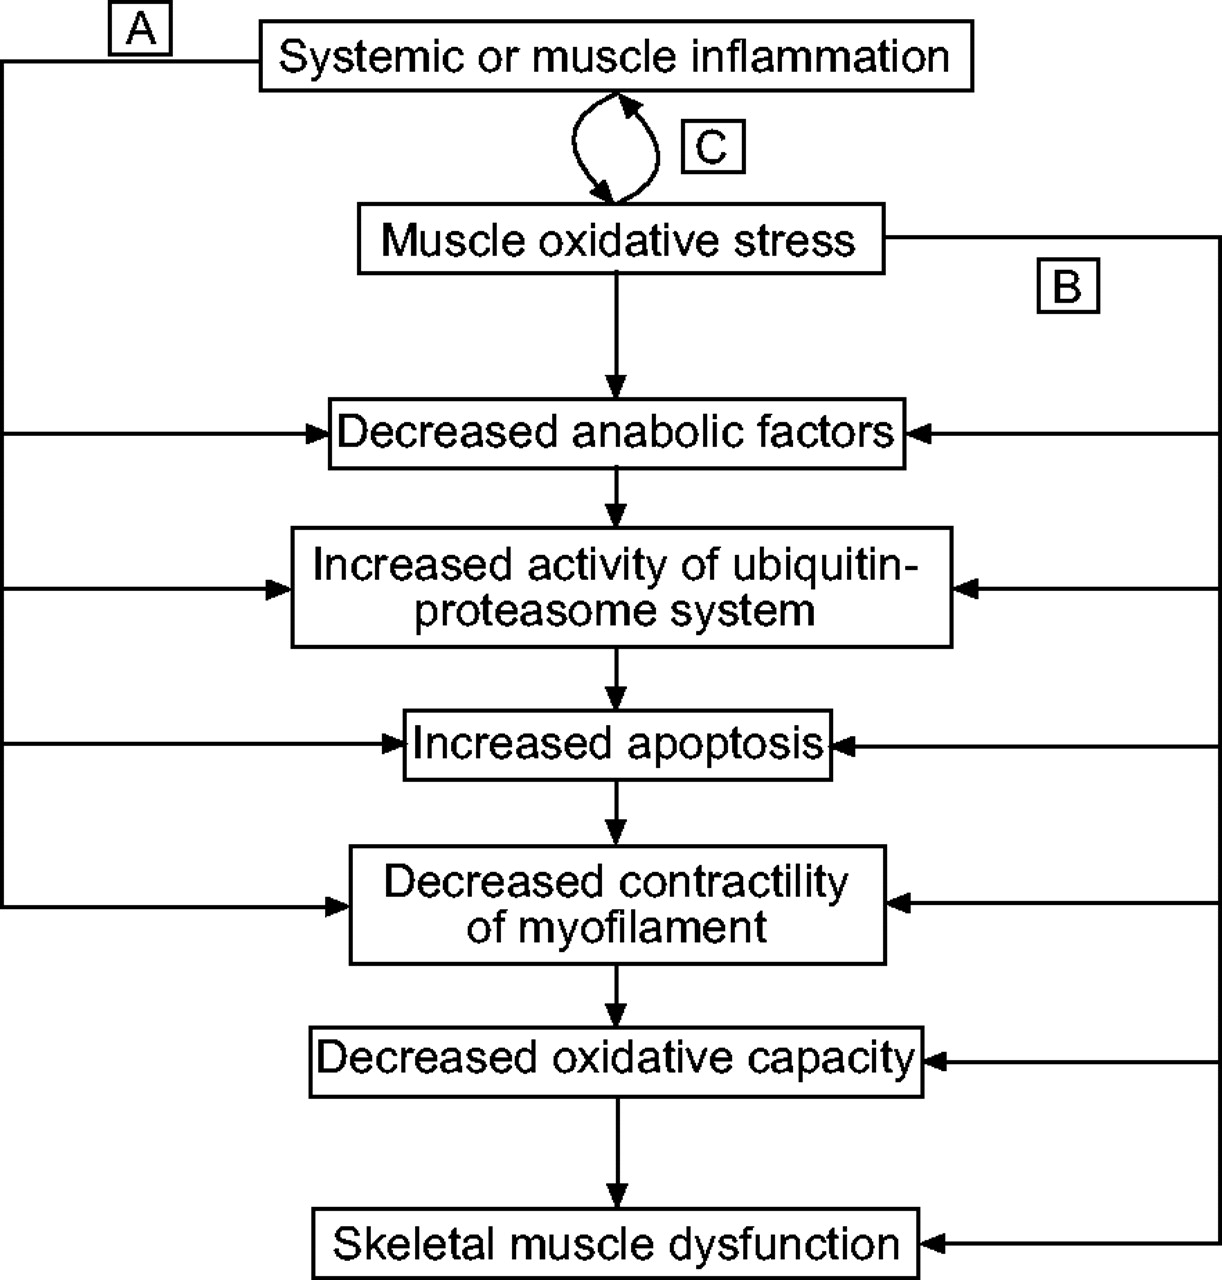 How to increase muscle oxidative capacity